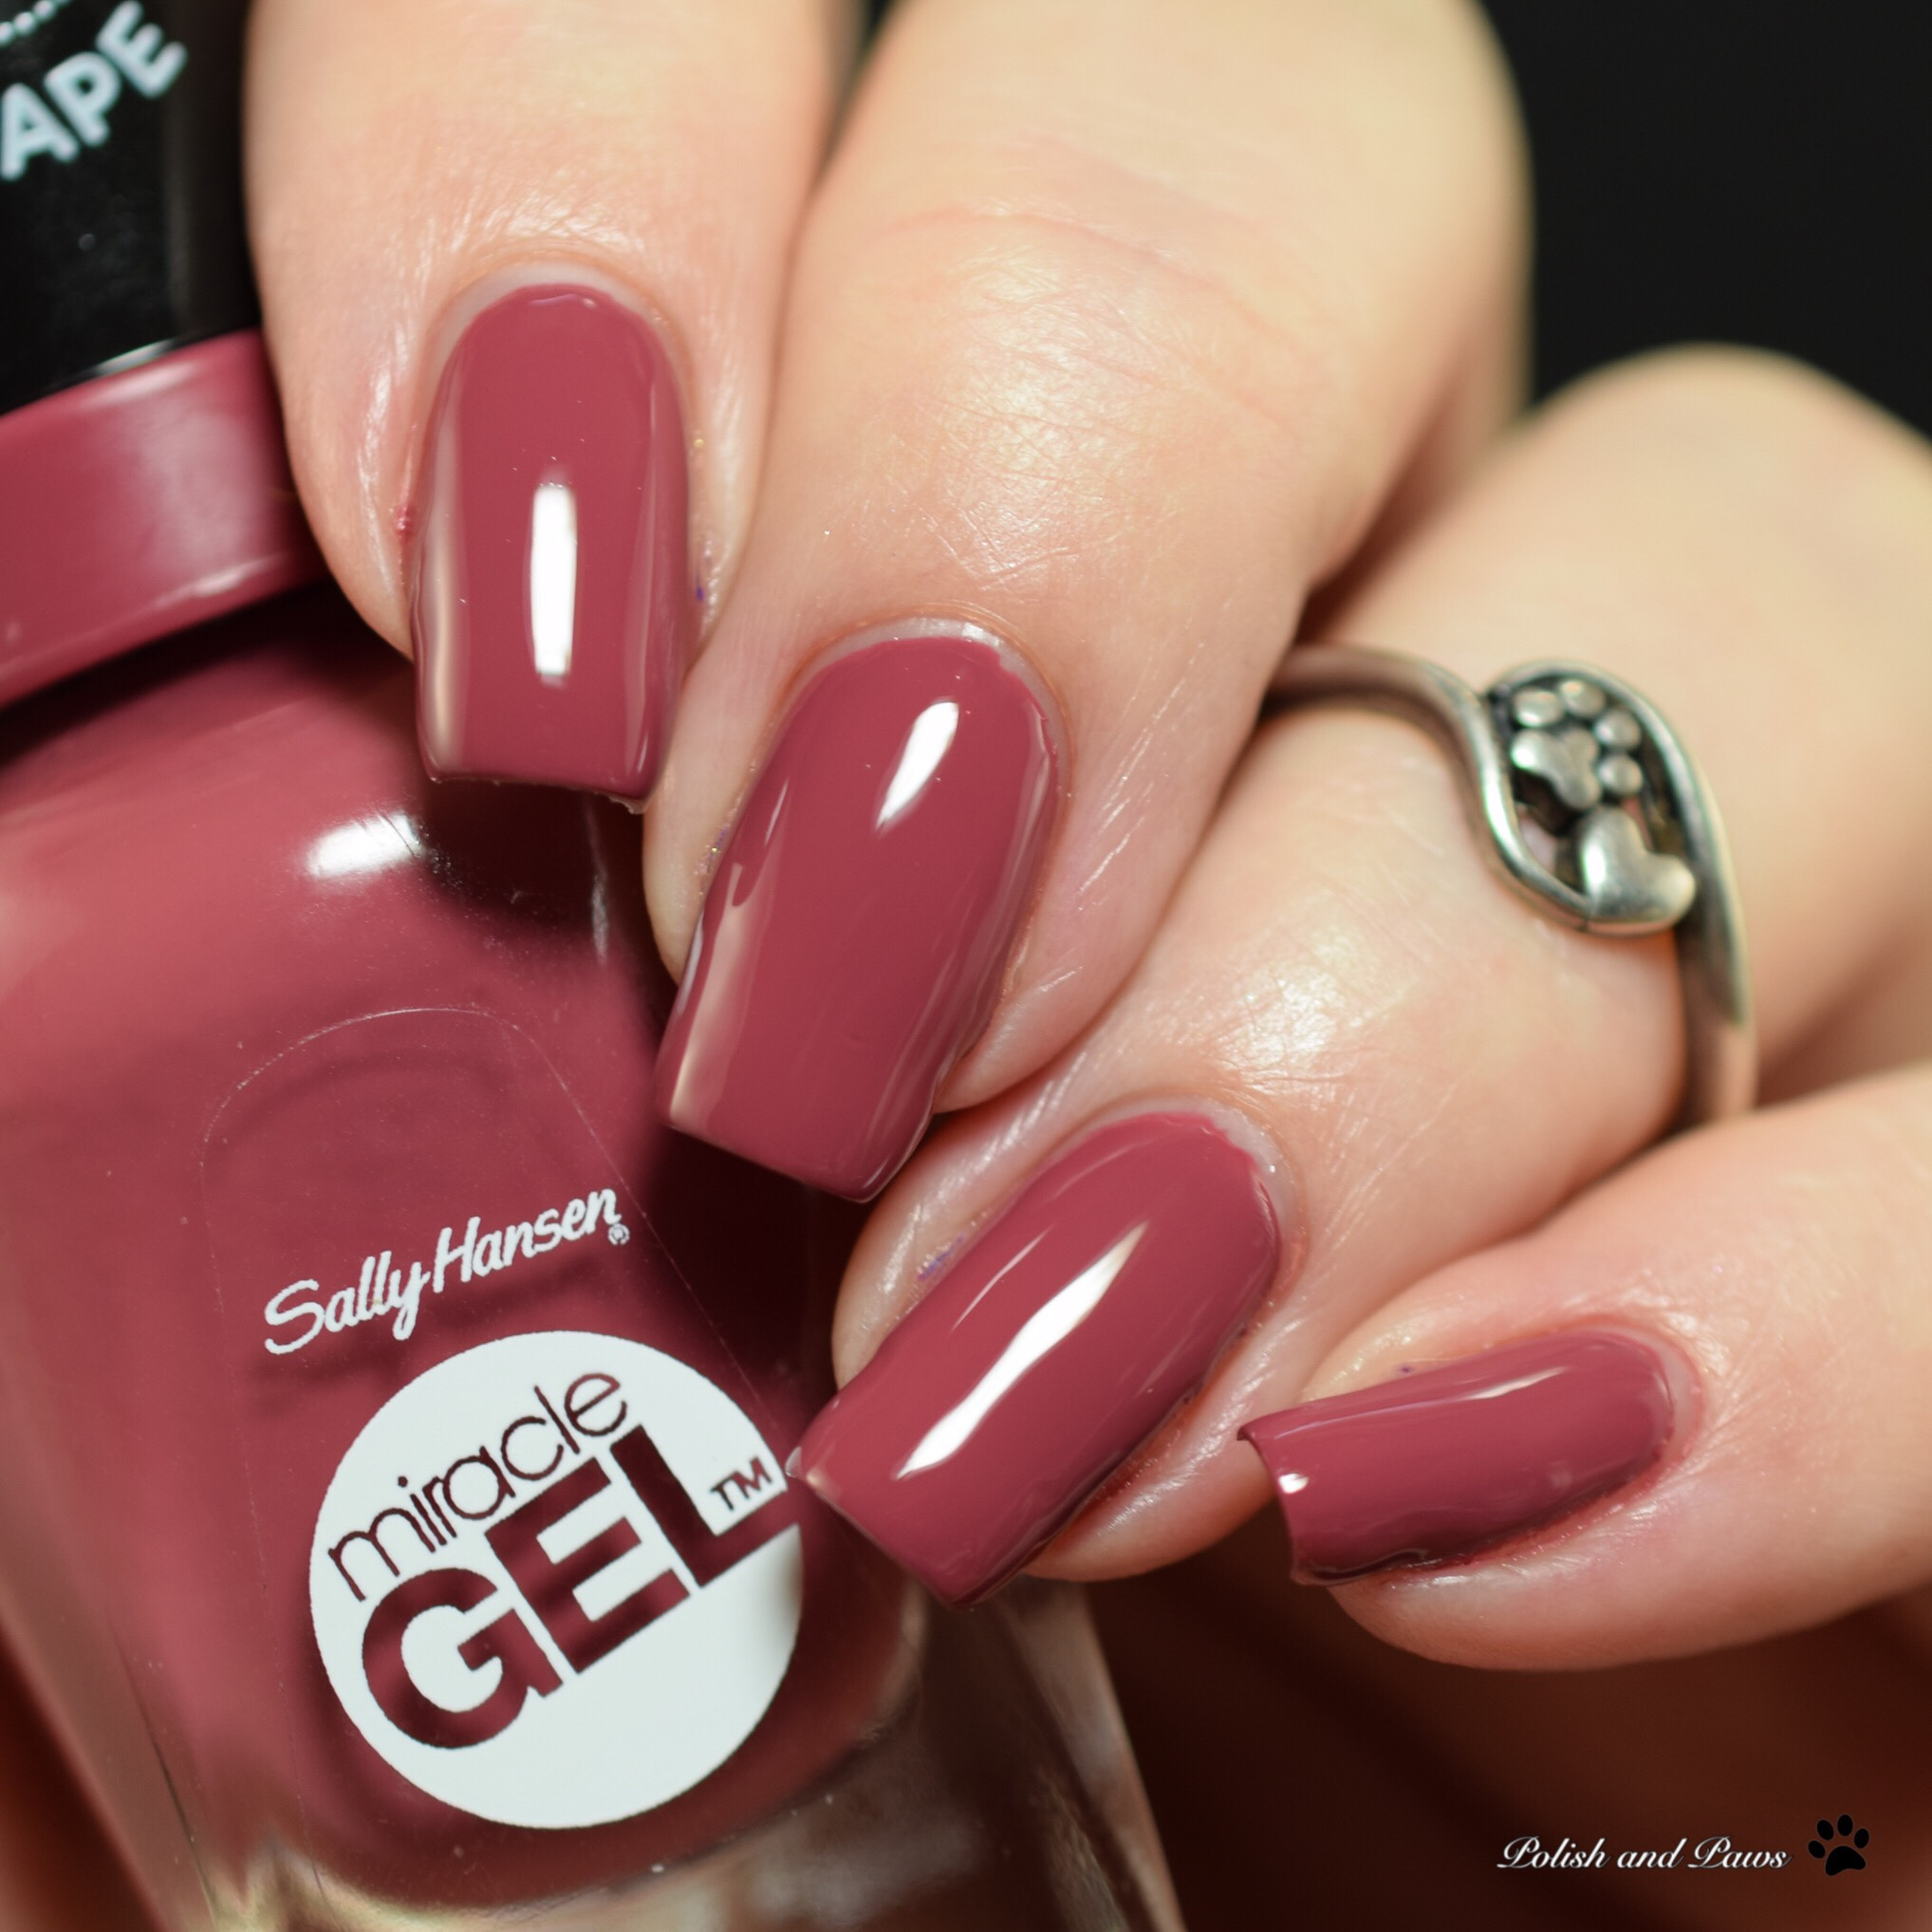 Sally Hansen Miracle Gel Beet Pray Love